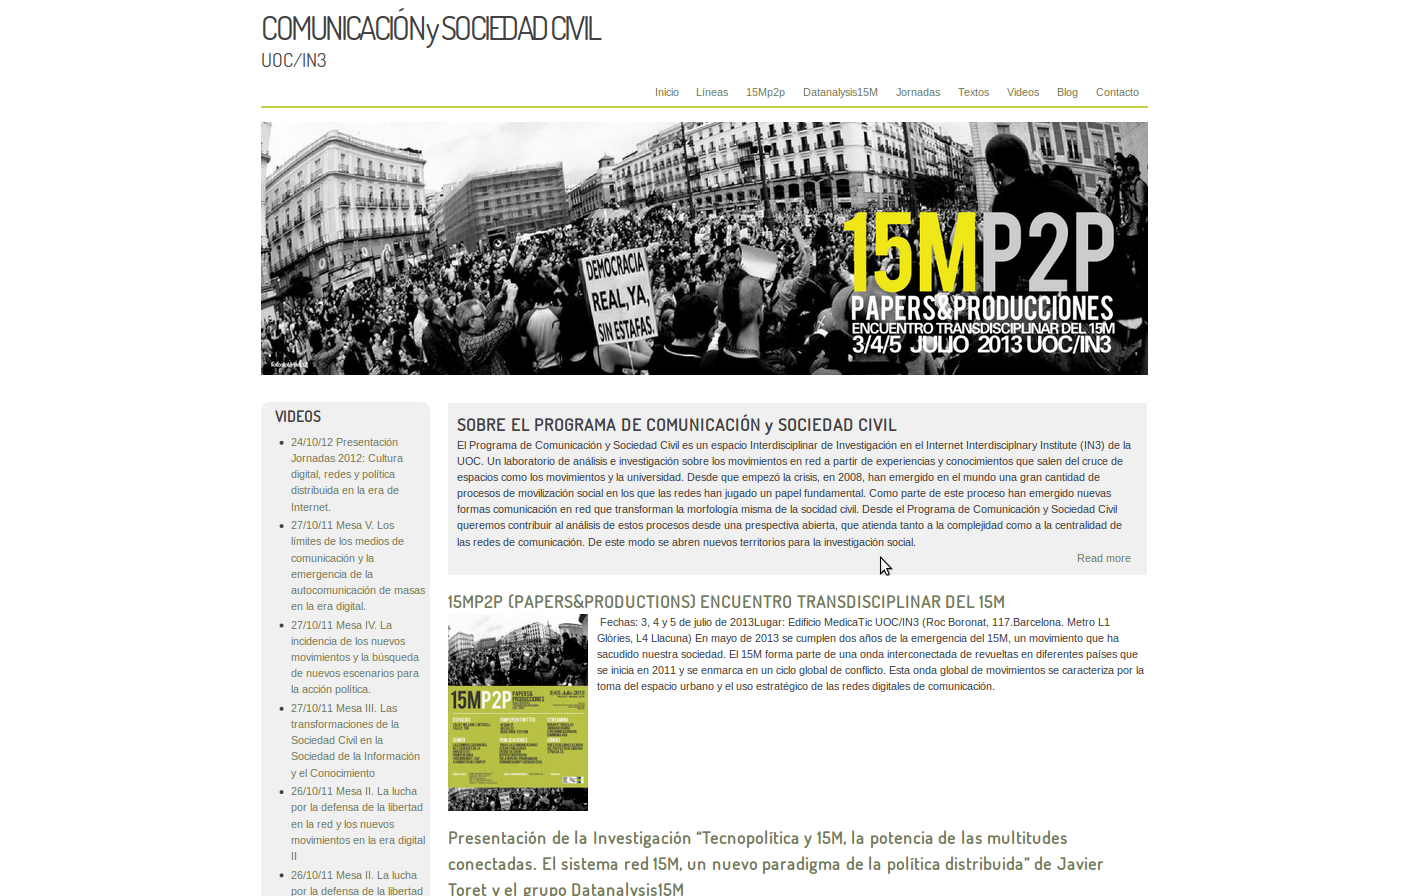 1era versió del web-Blog del Programa de Comunicación y Sociedad Civil del Internet Interdisciplnary Institute (IN3)